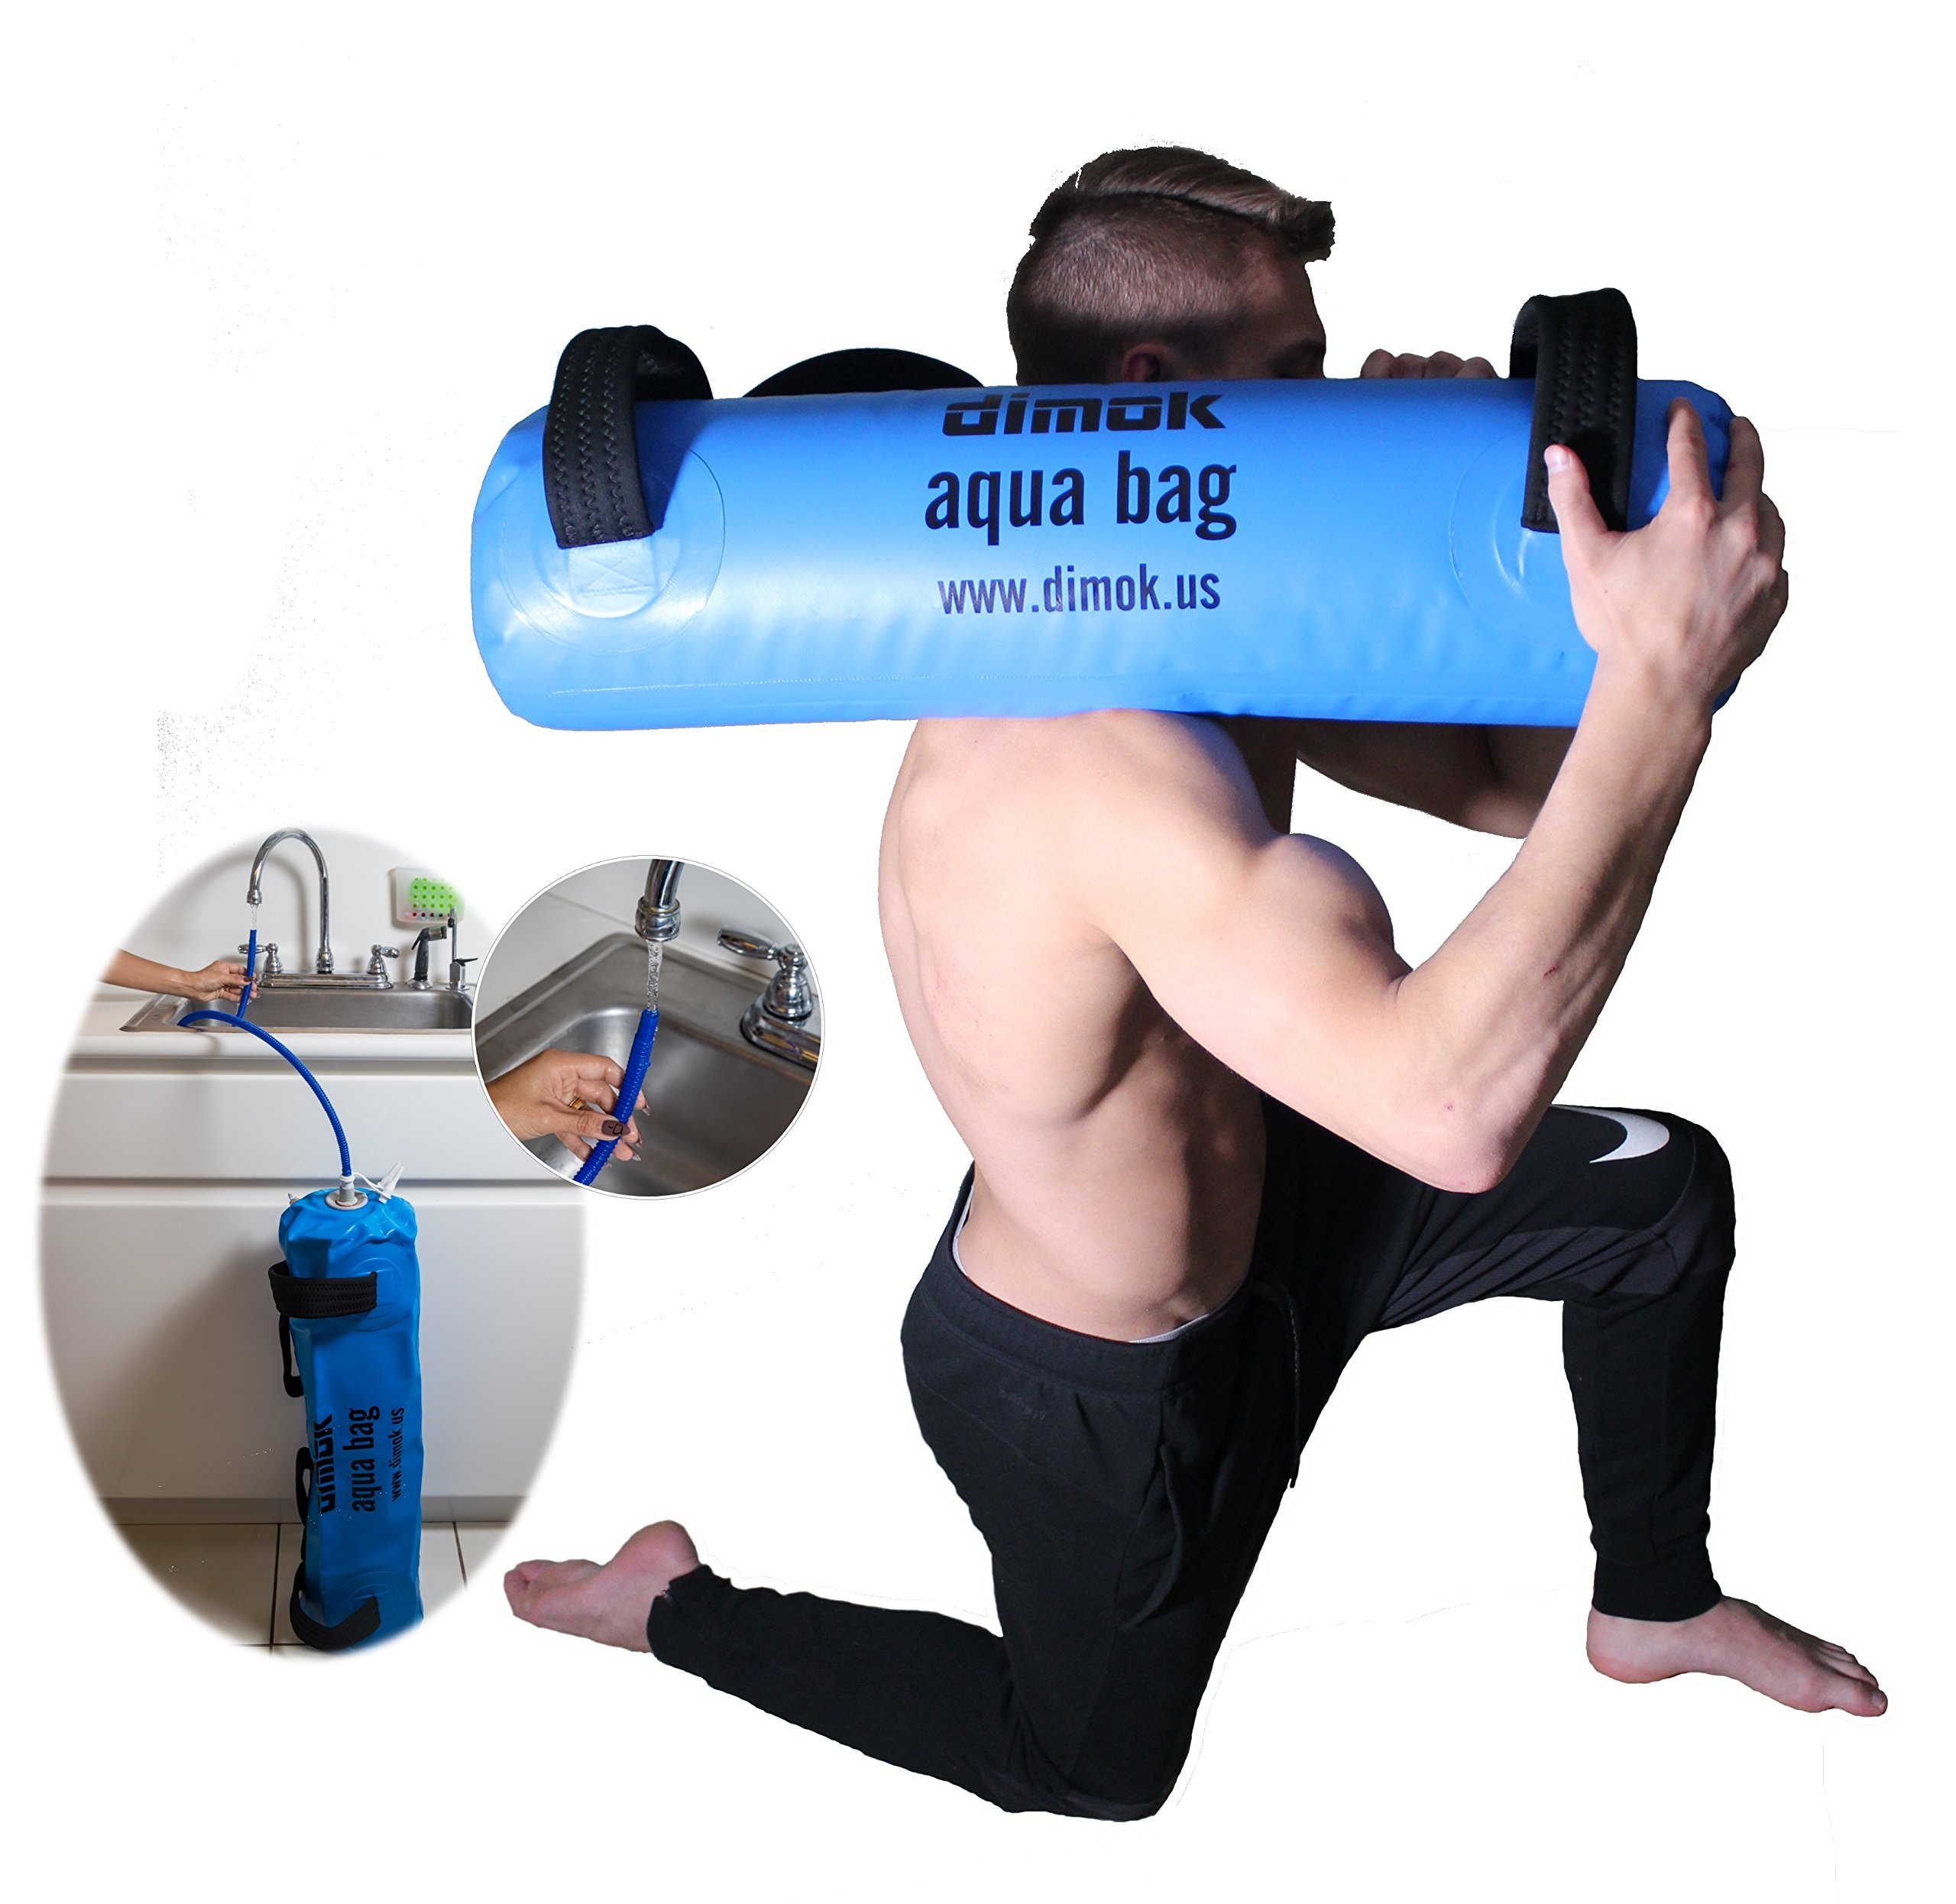 dimok Sandbag Alternative Aqua Bag Training Weight Bag - Adjustable Weights Portable Full Body Workout - Comes with a Foot Pump (45)